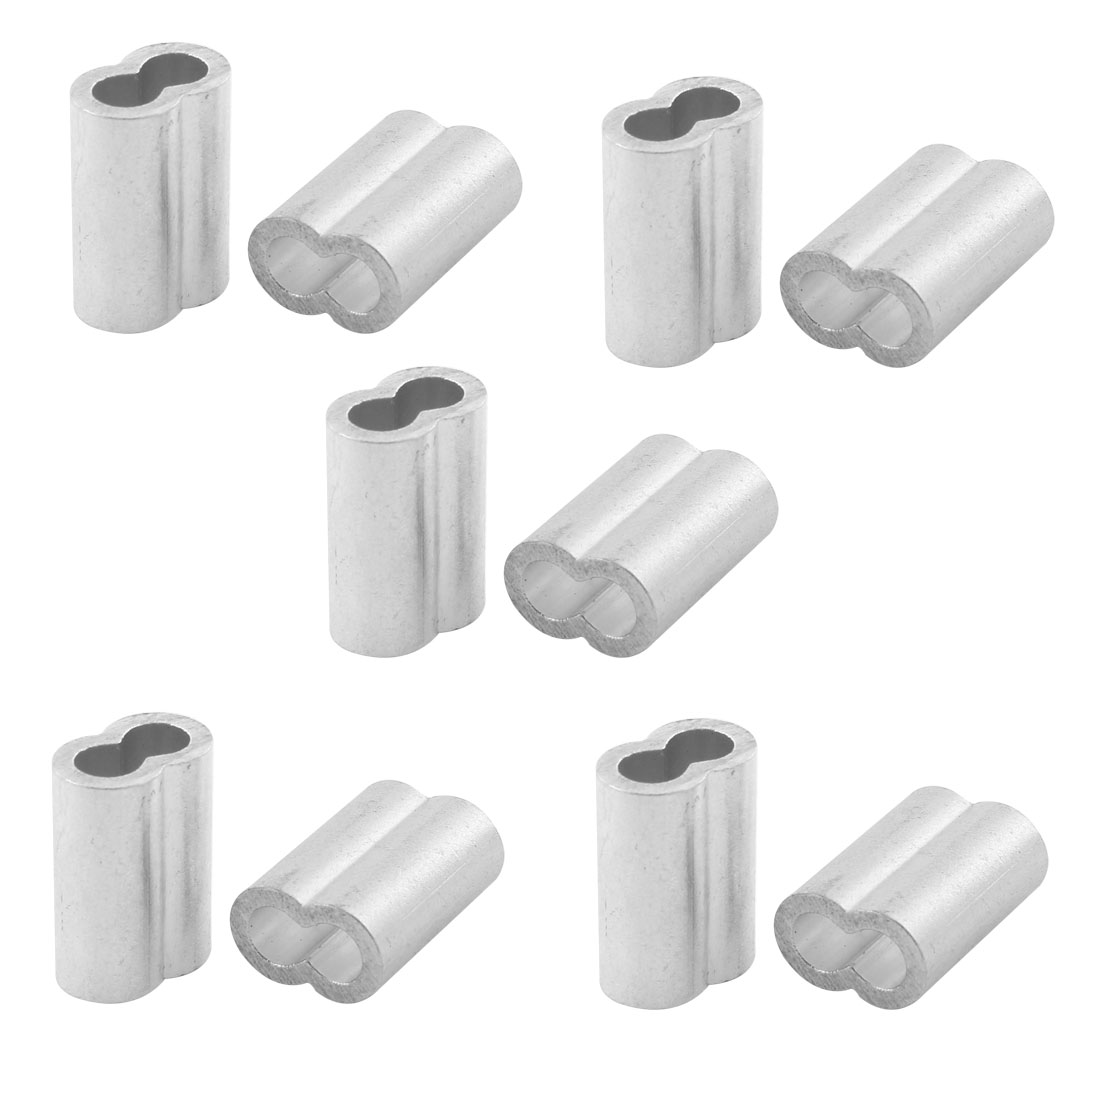 """10pcs Silver Tone Aluminum Sleeve for 1/4"""" Steel Wire Rope Swage Clip"""